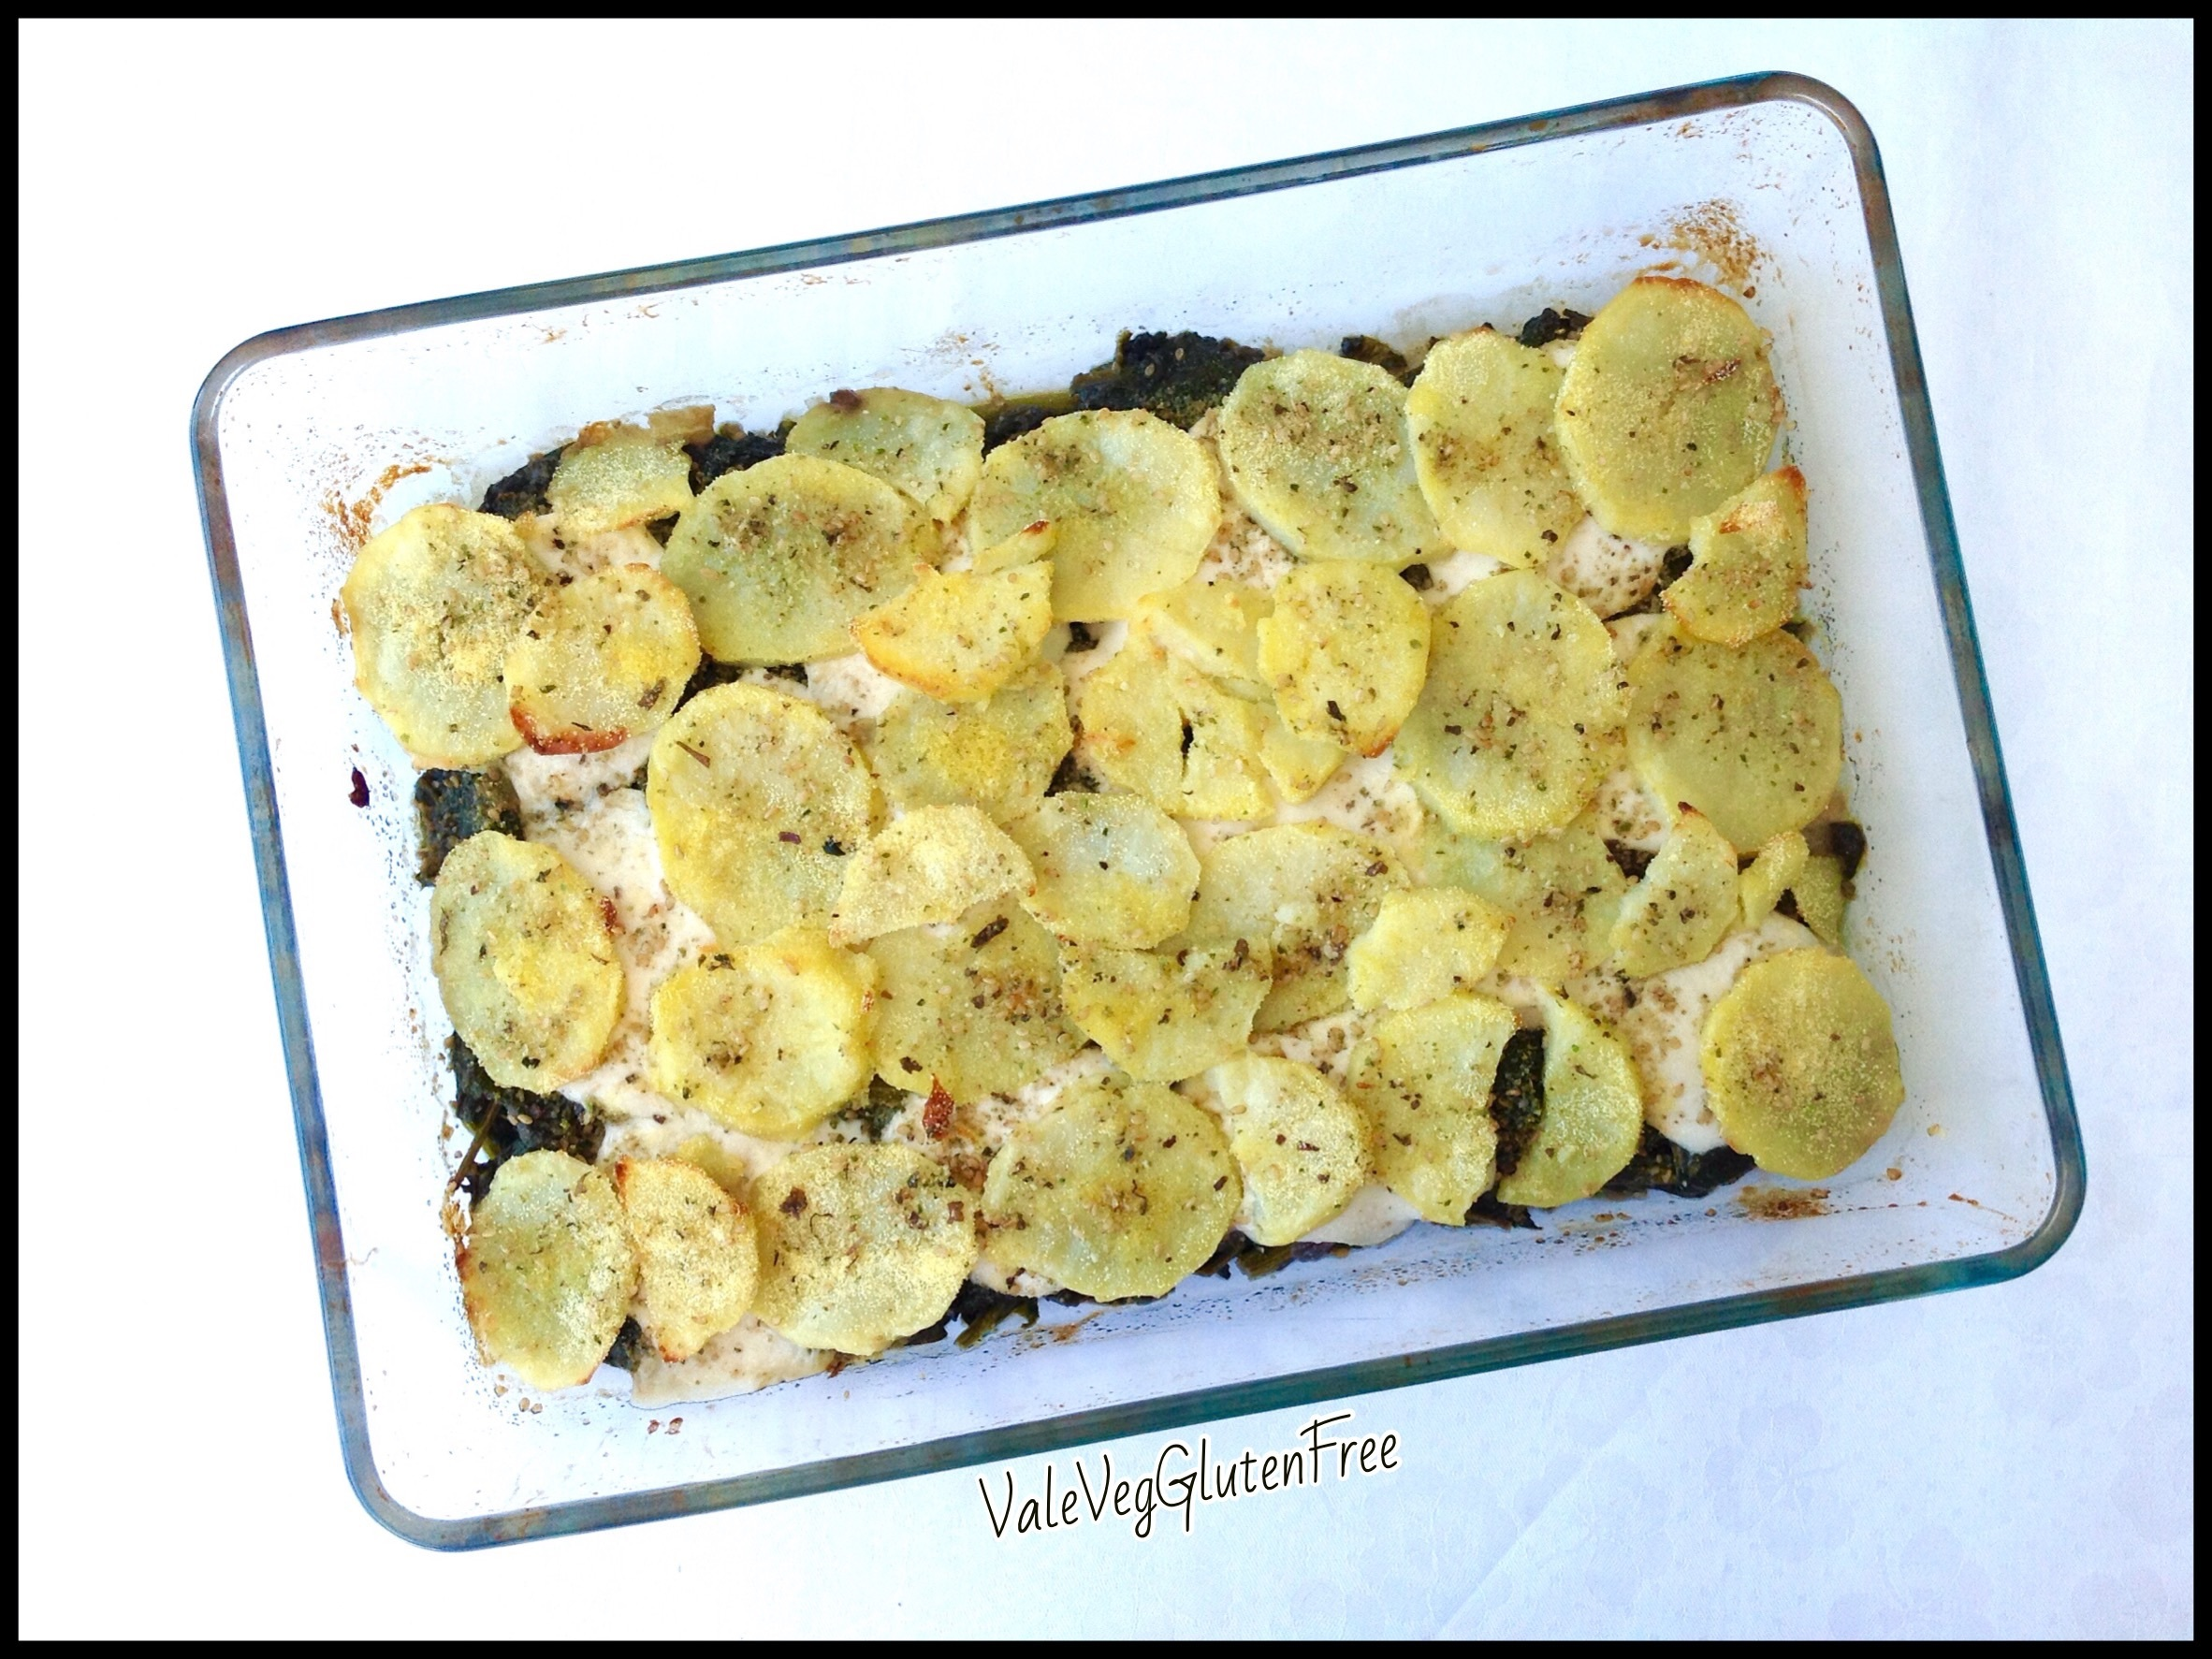 Cheesy Swiss chard and potatoes gratin / Gratinato formaggioso di bietole e patate